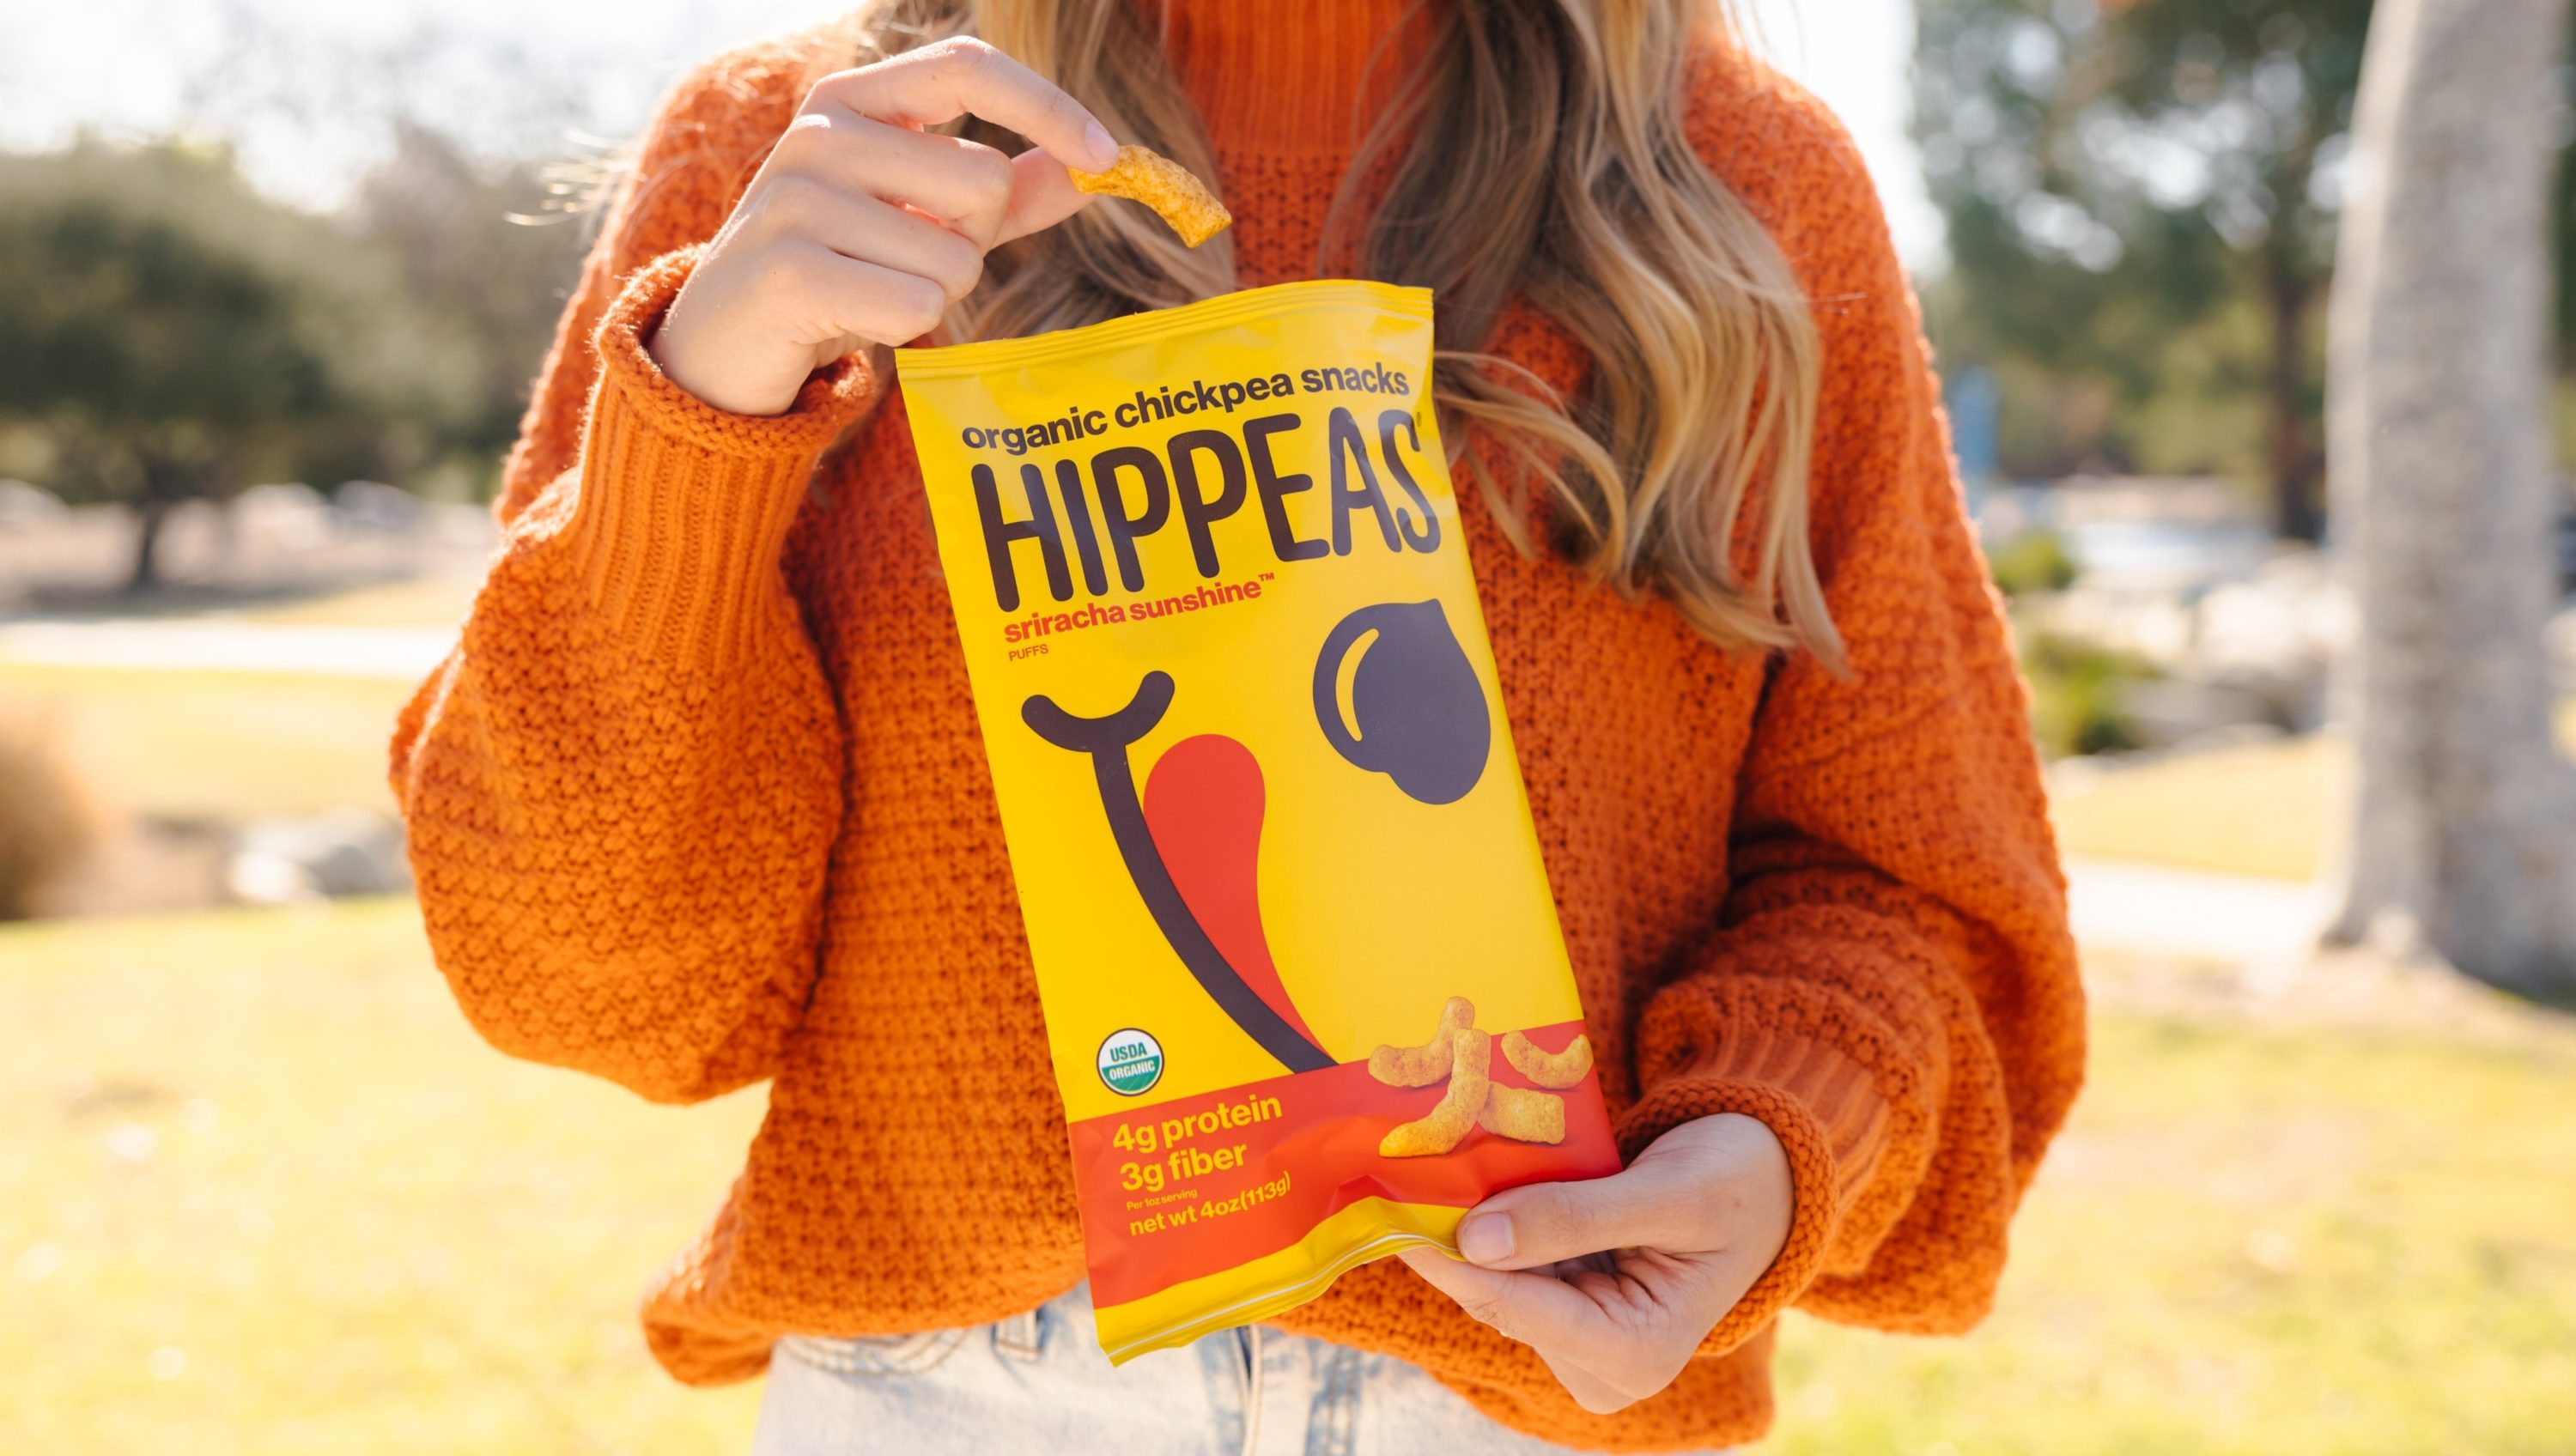 A female holding a bag of Hippeas